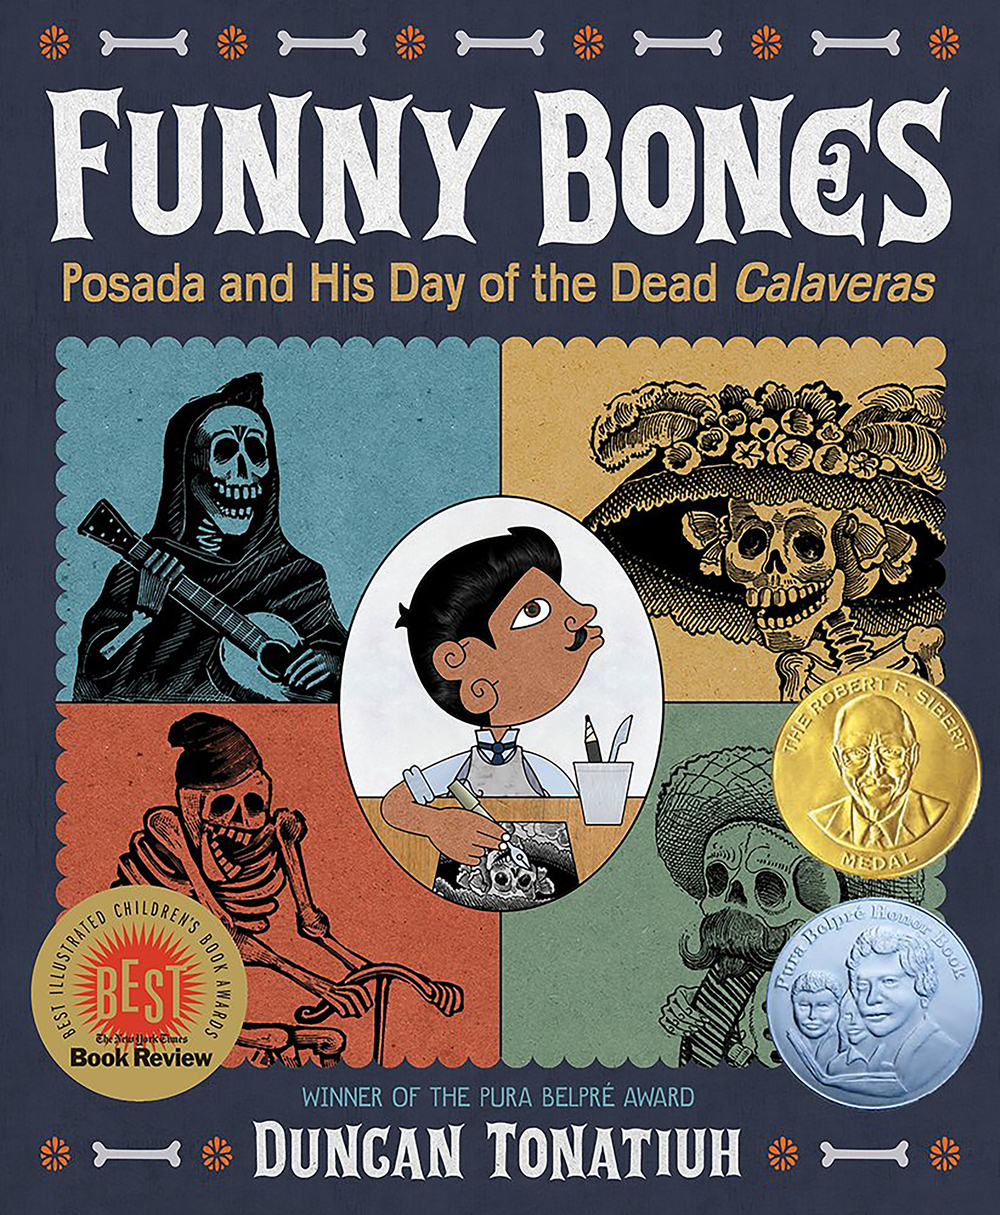 Funny bones posada and his day of the dead calaveras